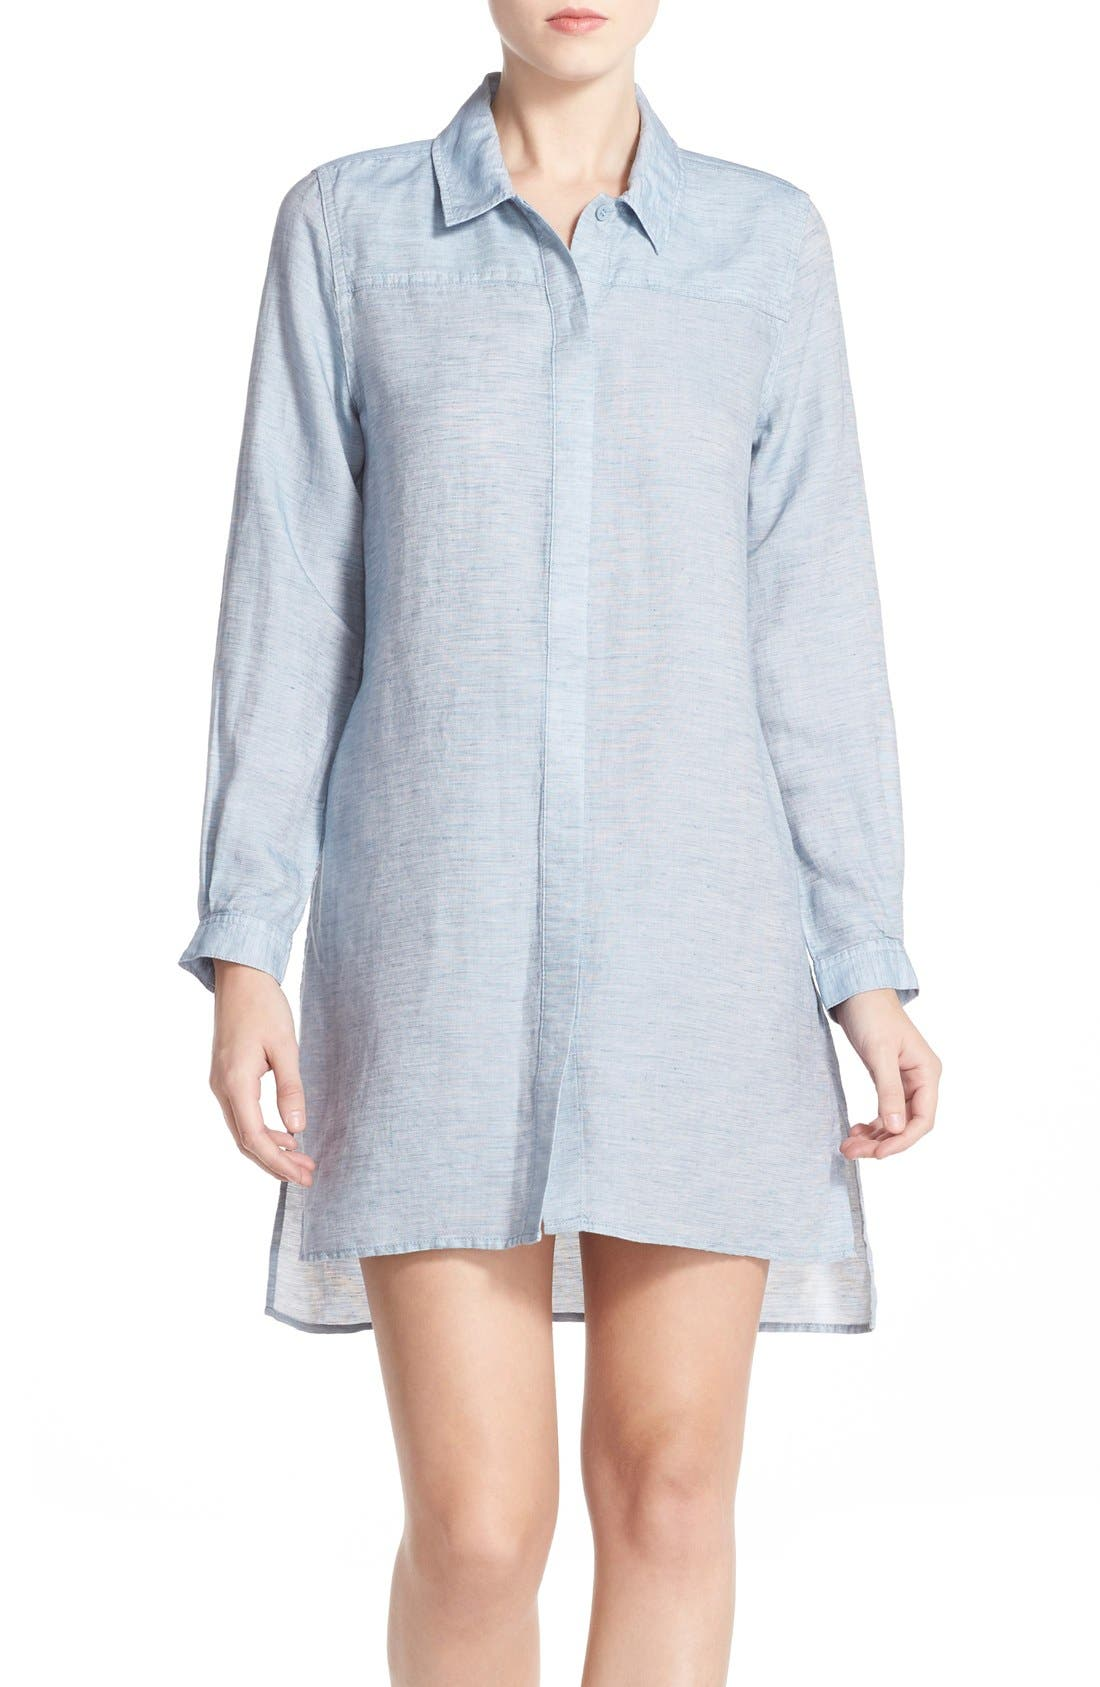 Alternate Image 1 Selected - French Connection Chambray Shirtdress